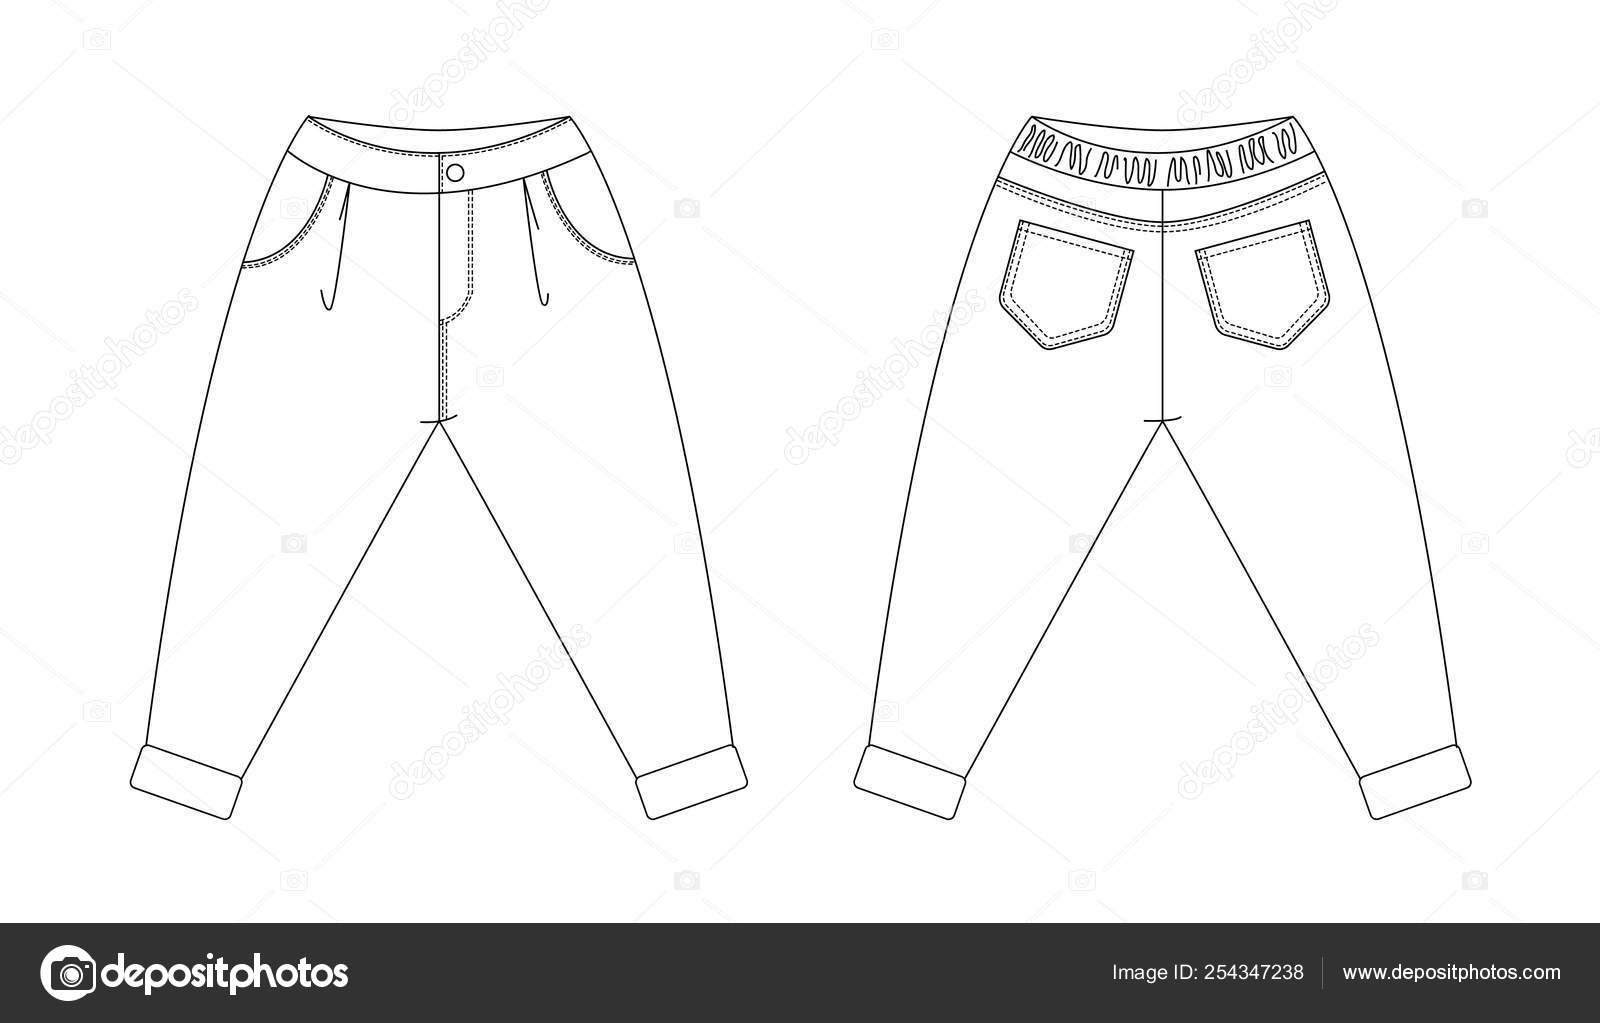 Technical Drawing Of Childrens Fashion Pants With Pleats And Cuffs For Kids Front And Back Views Stock Vector C Evgenialo 254347238